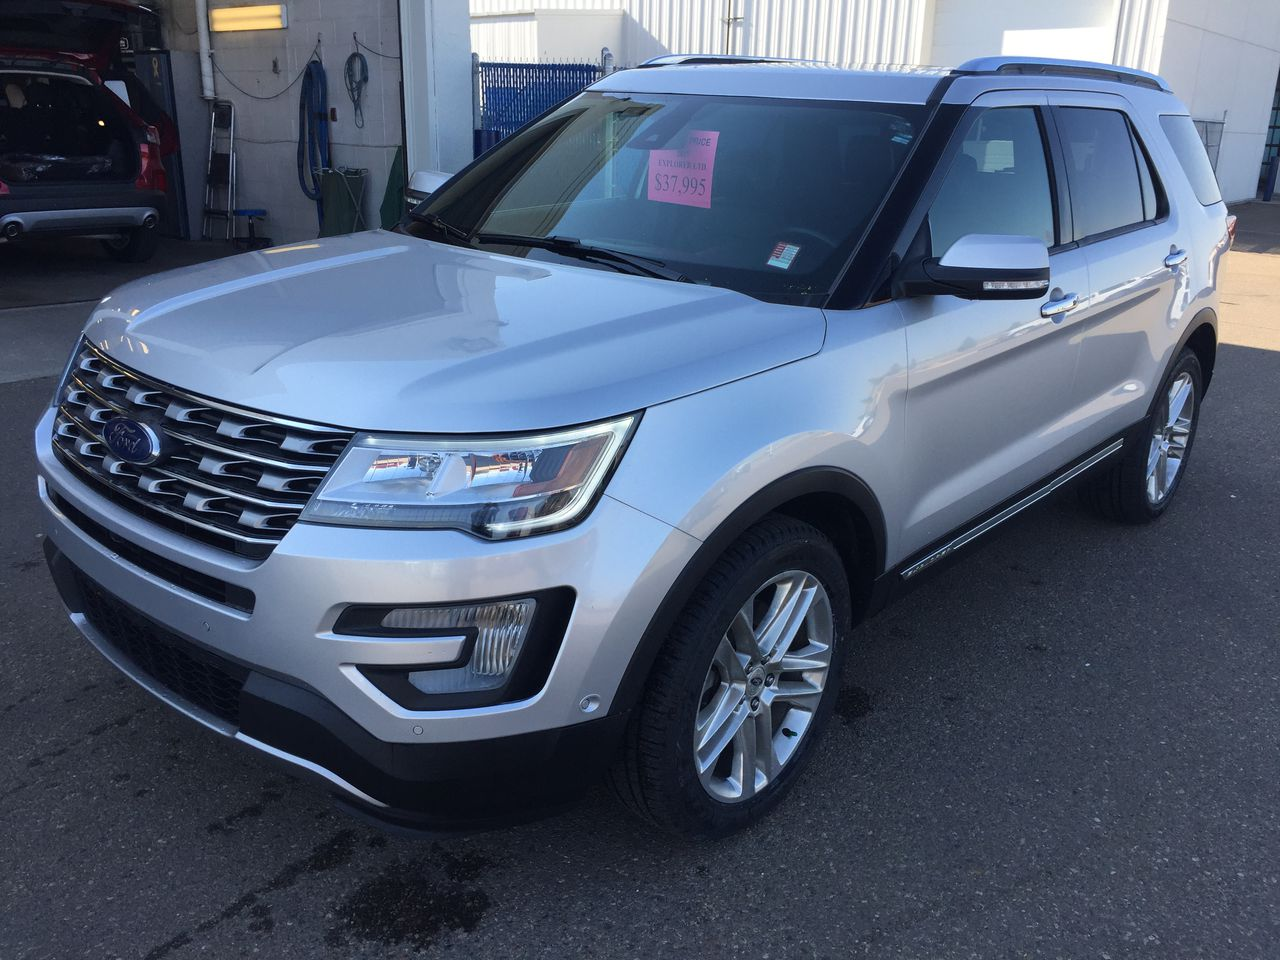 2017 Ford Explorer Limited AWD (U3779) Main Image